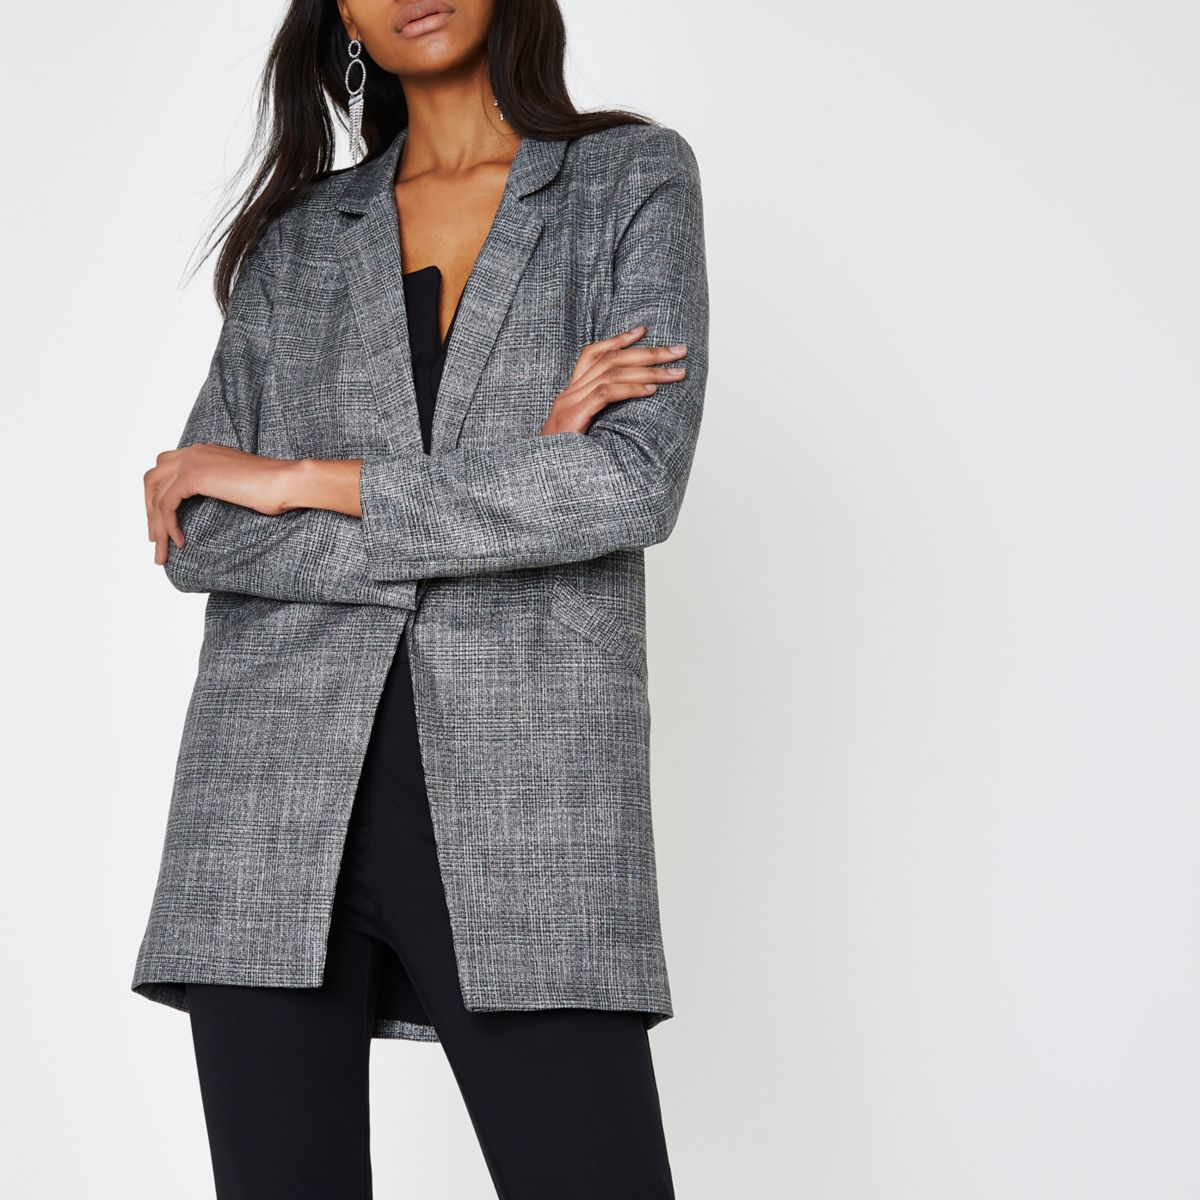 River Island Grey Blazer